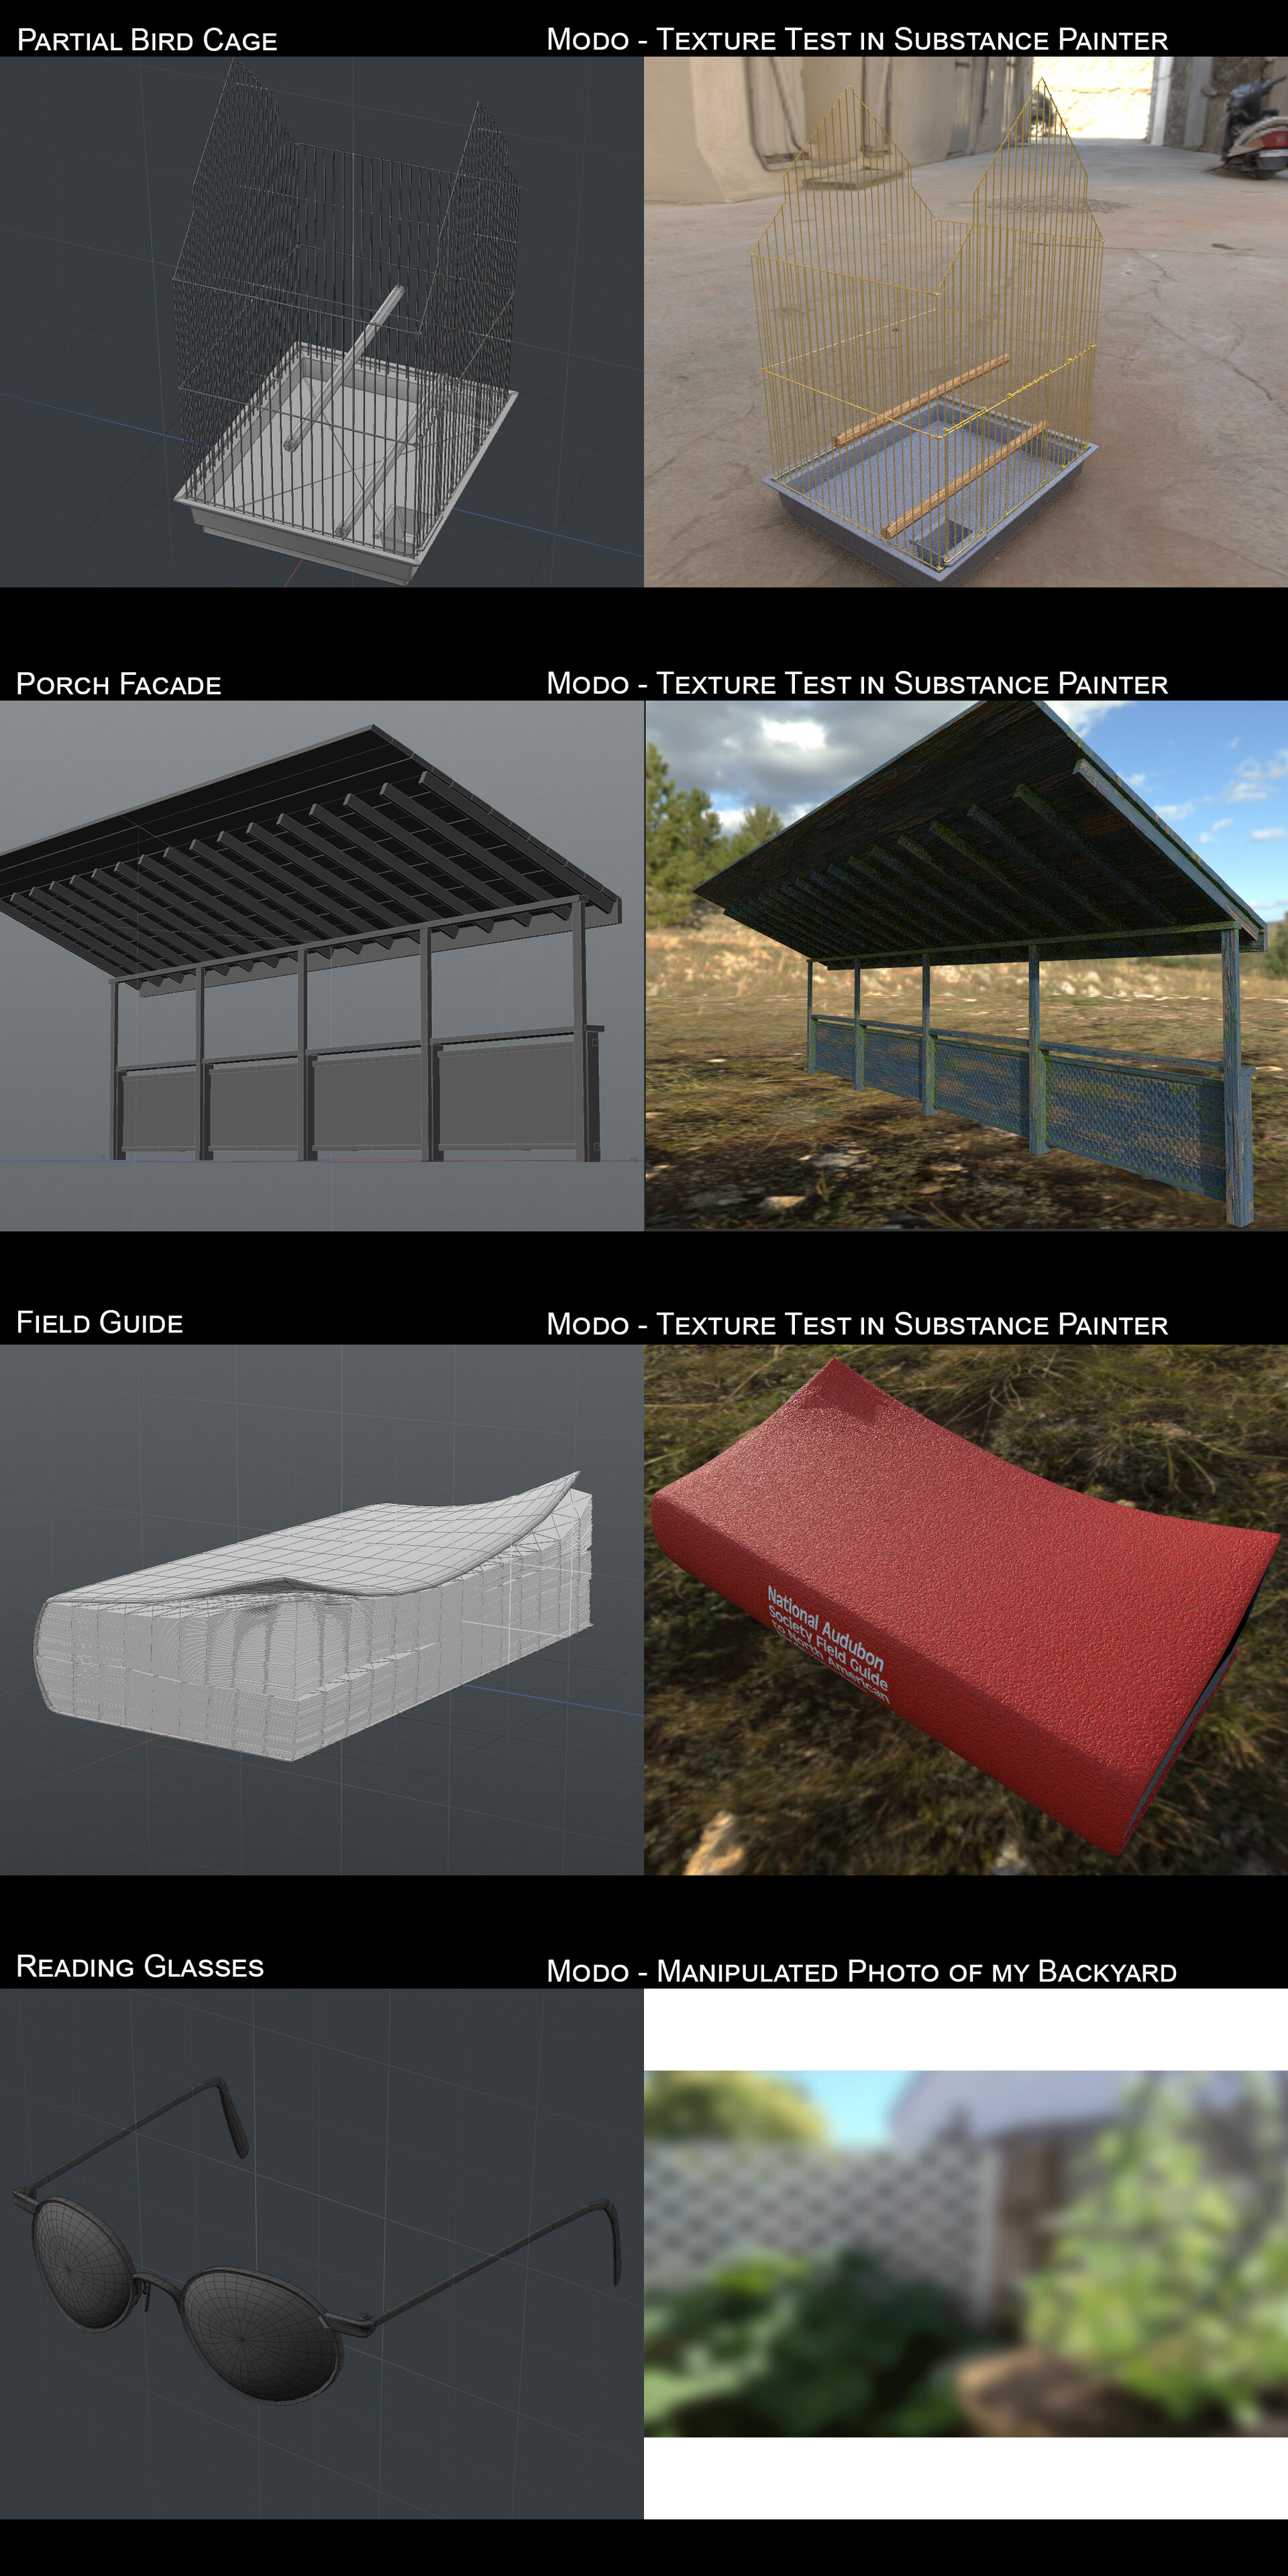 Individual views of the items modeled specifically for this image.